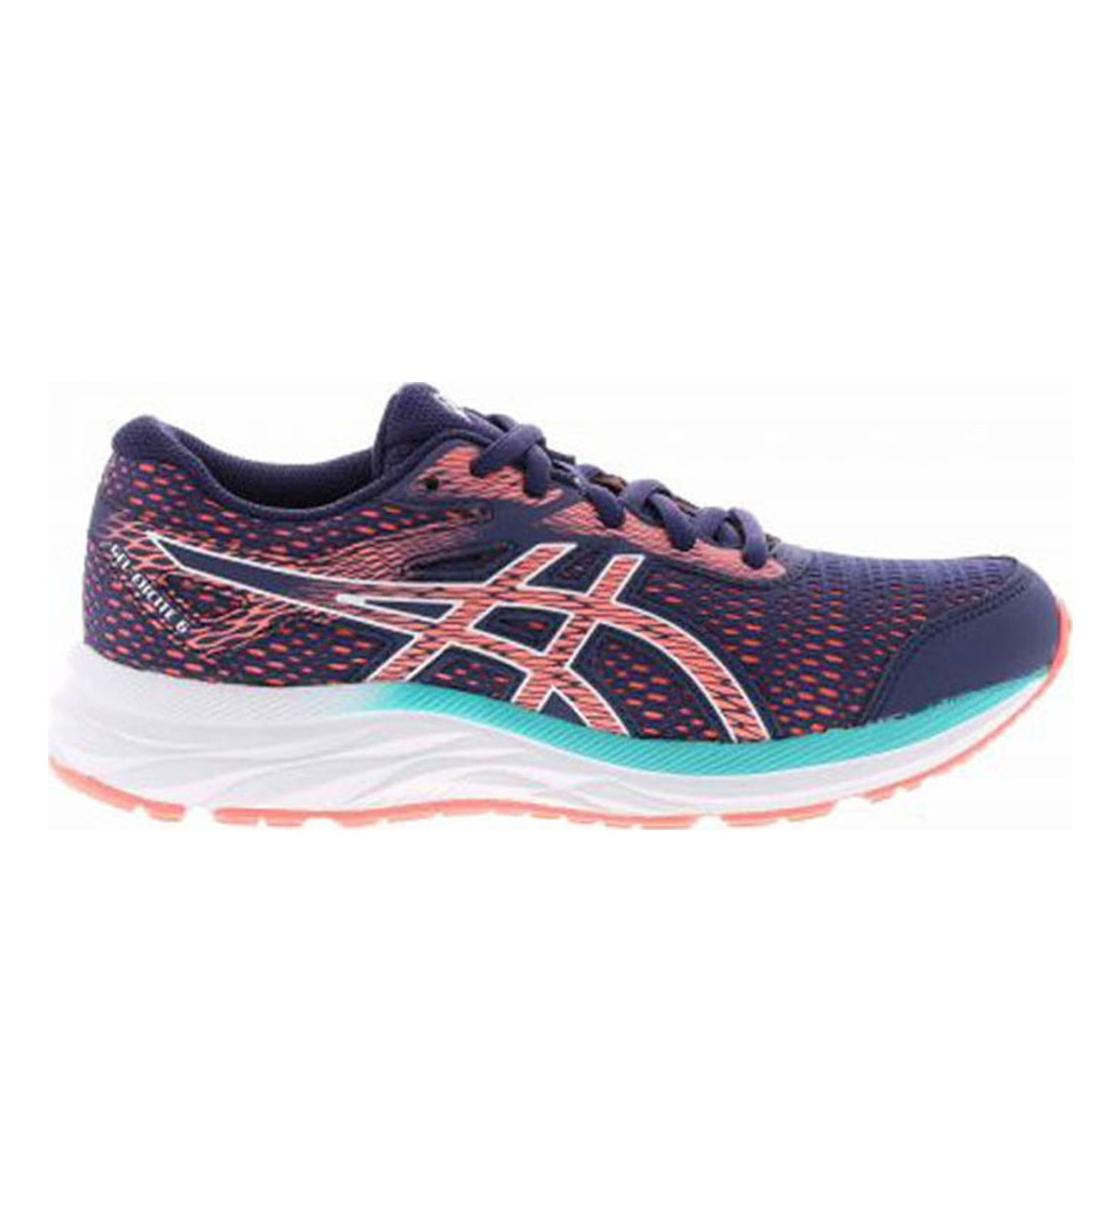 Asics Fw19 Gel-Excite 6 Gs